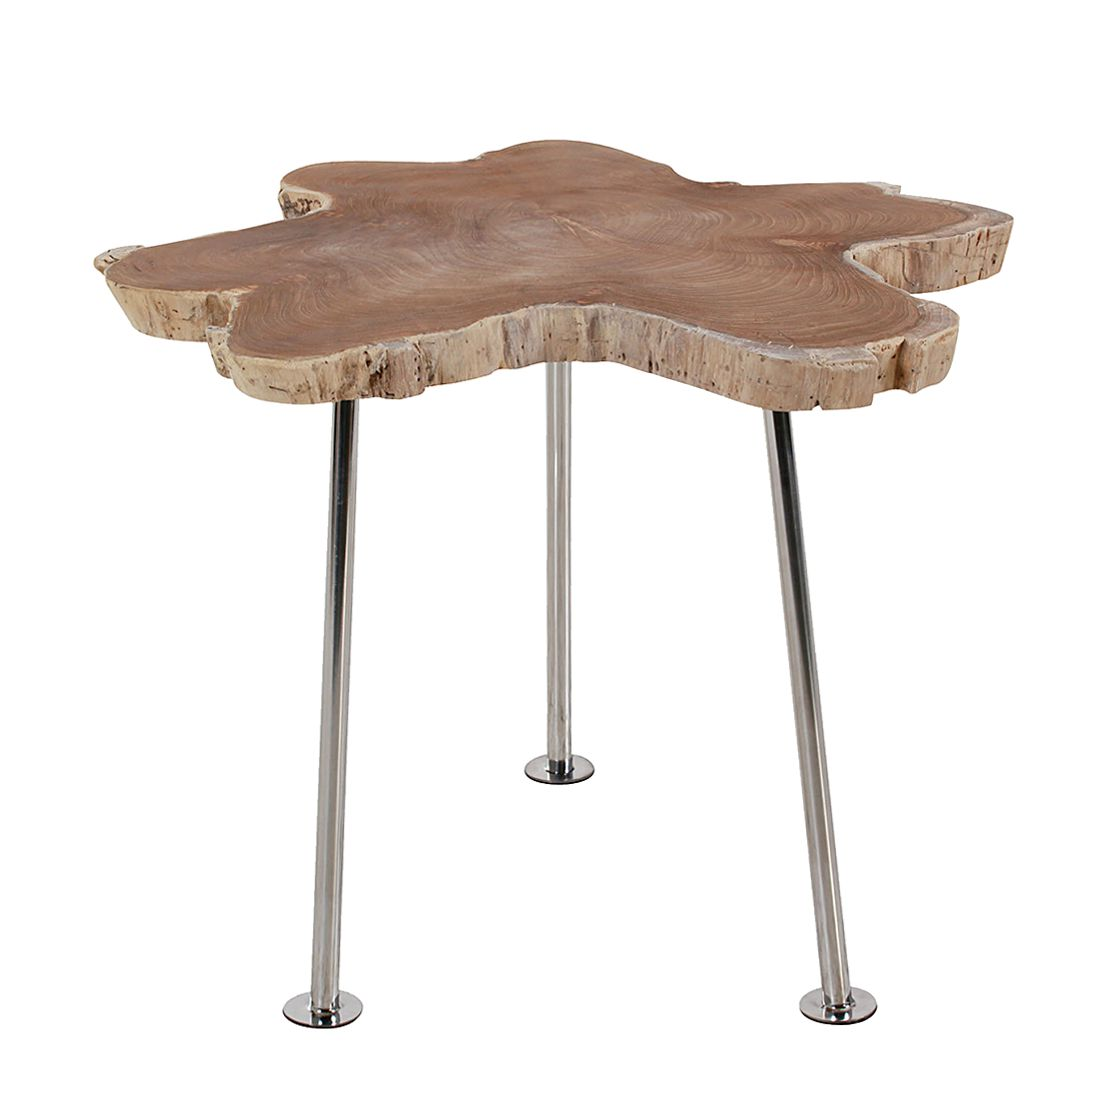 Table basse Ranch - Bois de teck massif Naturel - 75 x 75 cm, Ars Natura